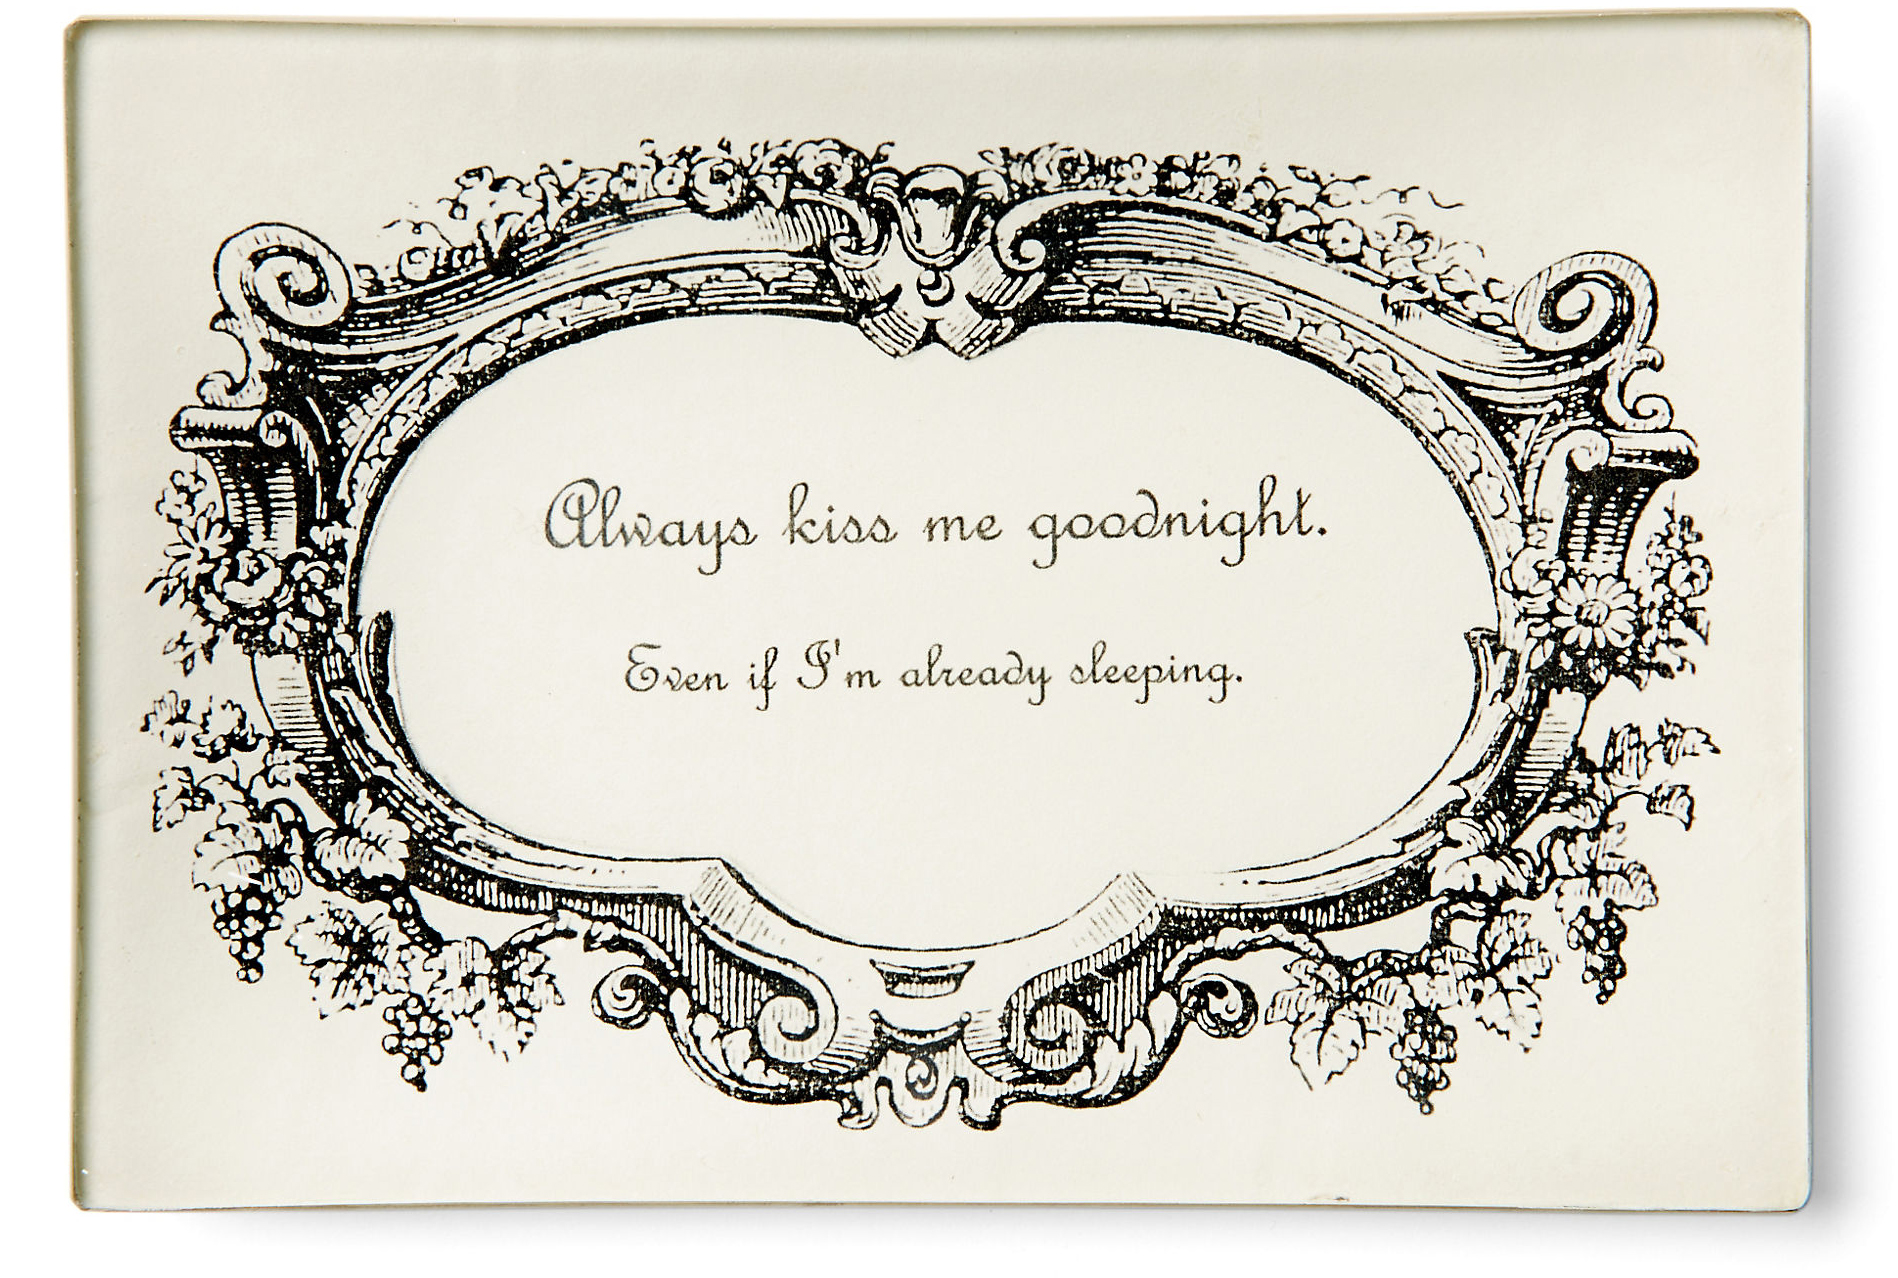 Goodnight Kiss Tray from One Kings Lane